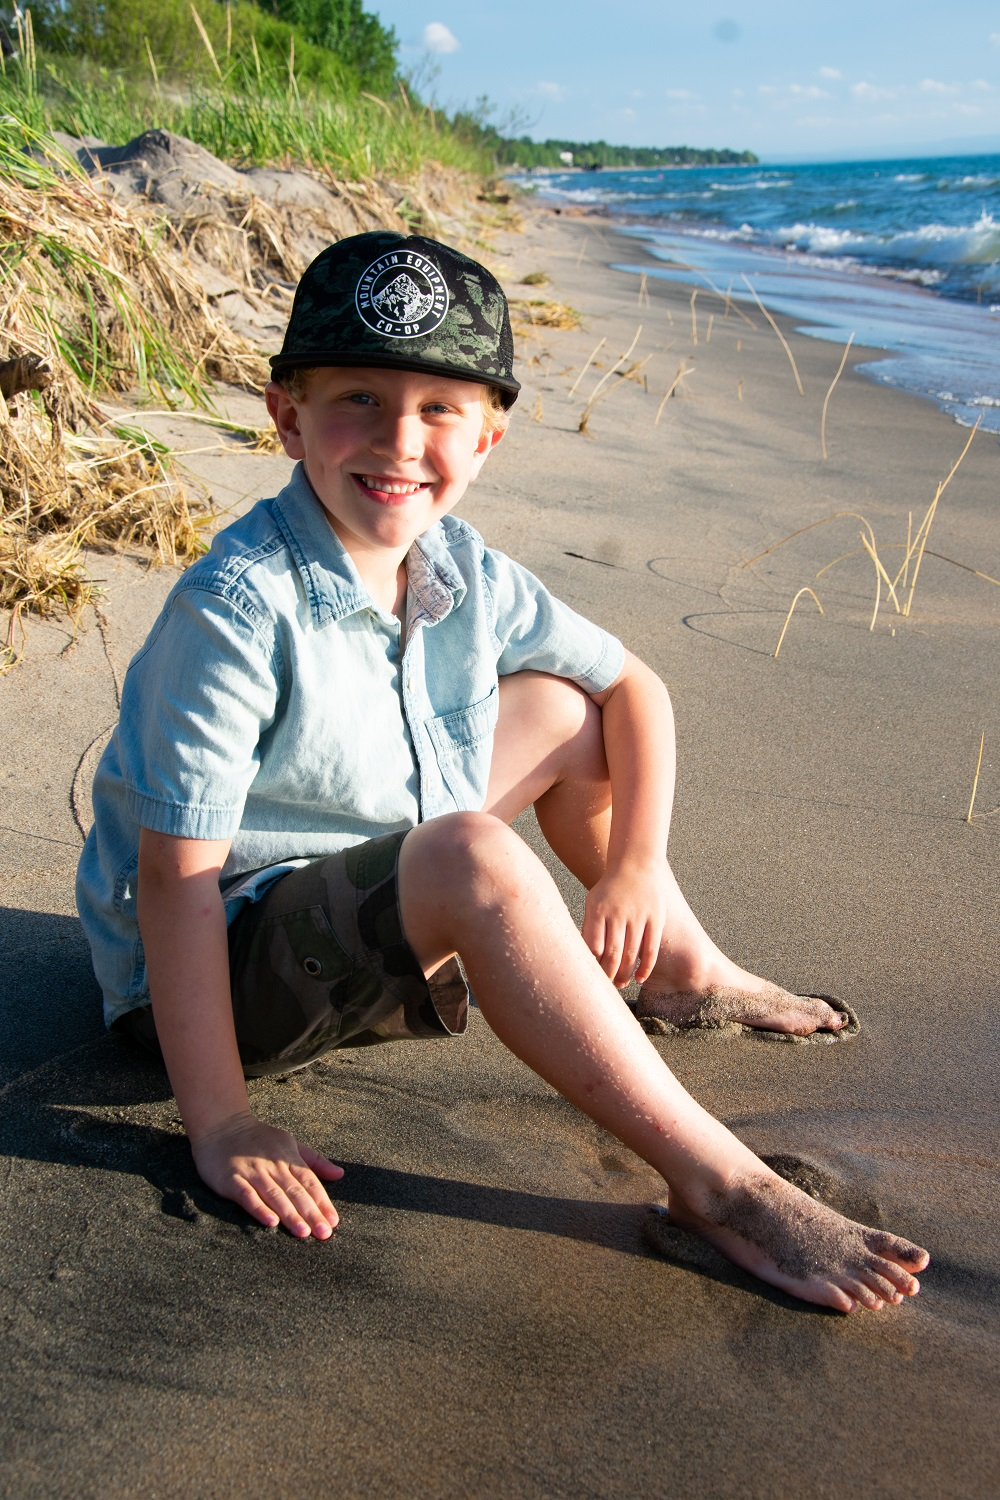 young boy sitting on beach smiling at camera wearing hat, shirt and shorts